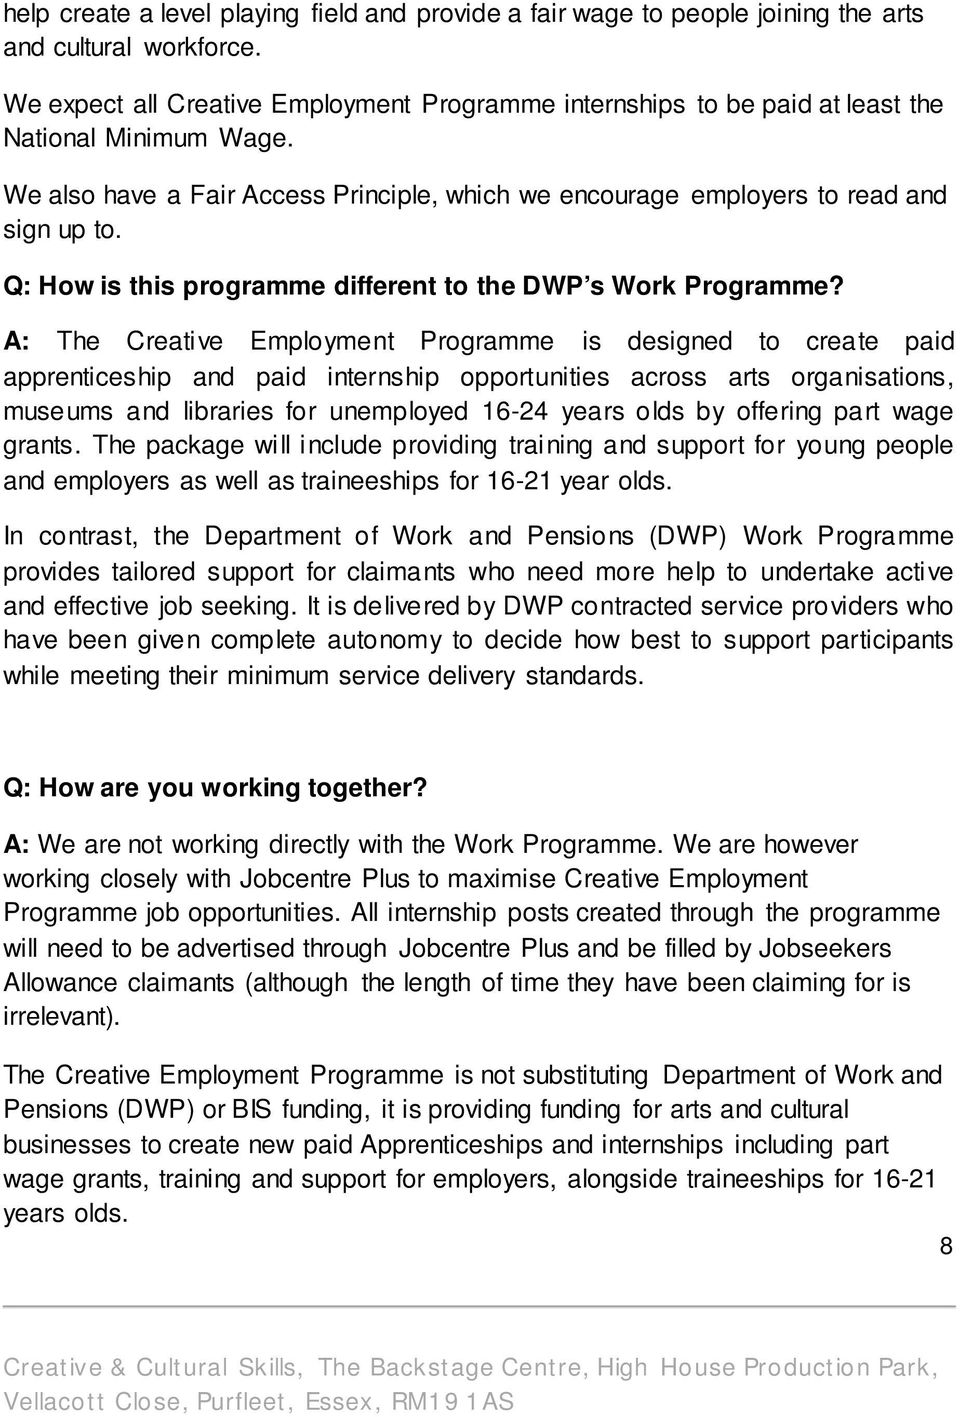 Q: How is this programme different to the DWP s Work Programme?